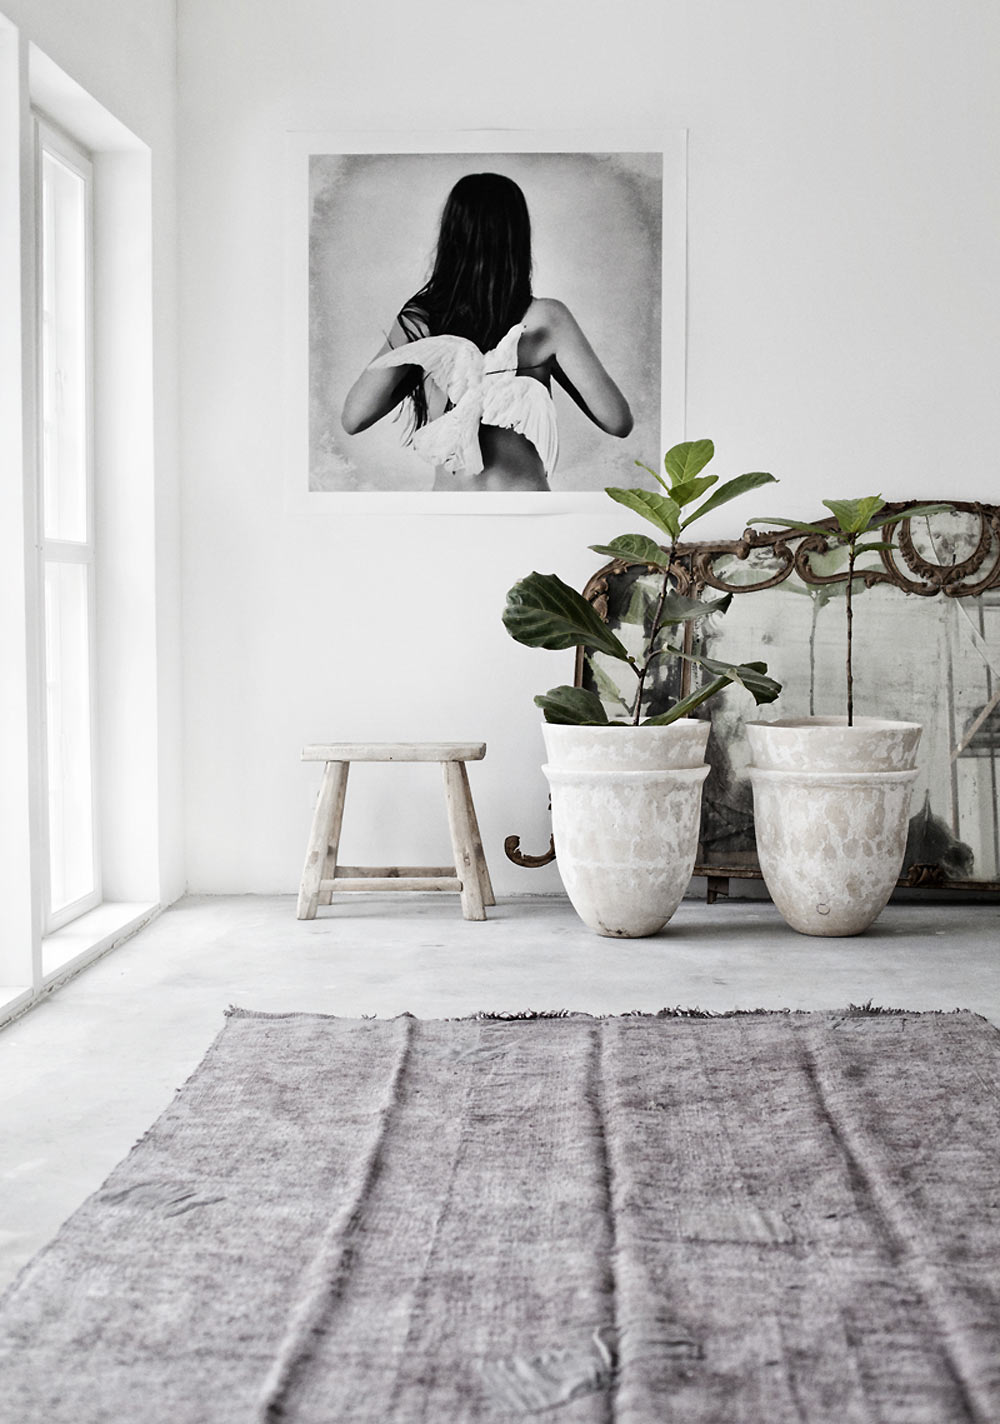 Marie-Olsson-Nylander-Interior-Inspiration-Oracle-Fox.5